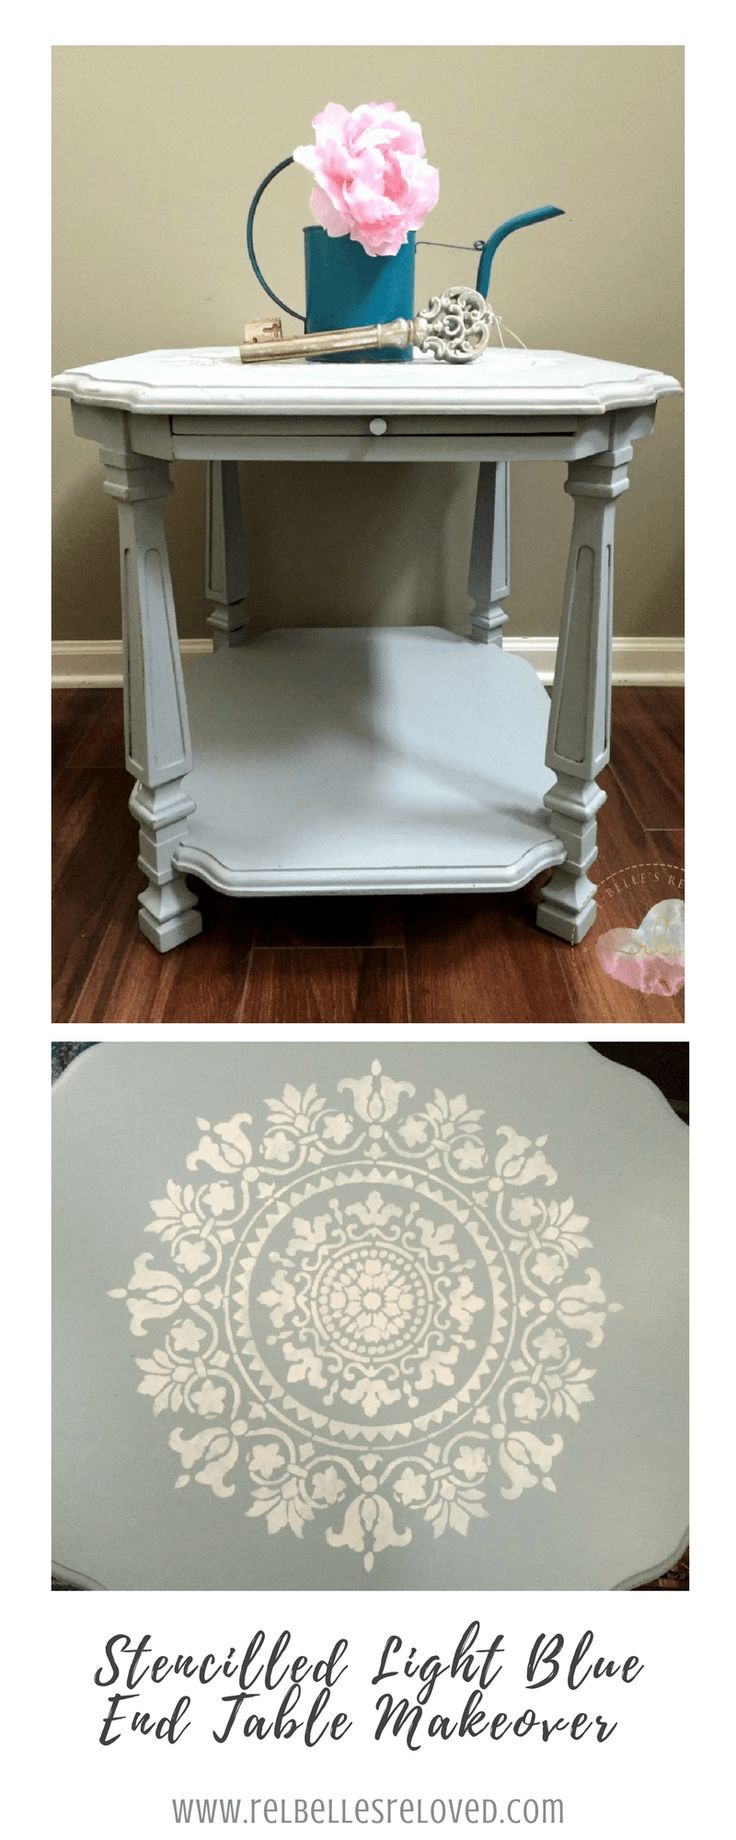 Stencilled Light Blue End Table Makeover Using Rethunk Junk Paint By Laura.